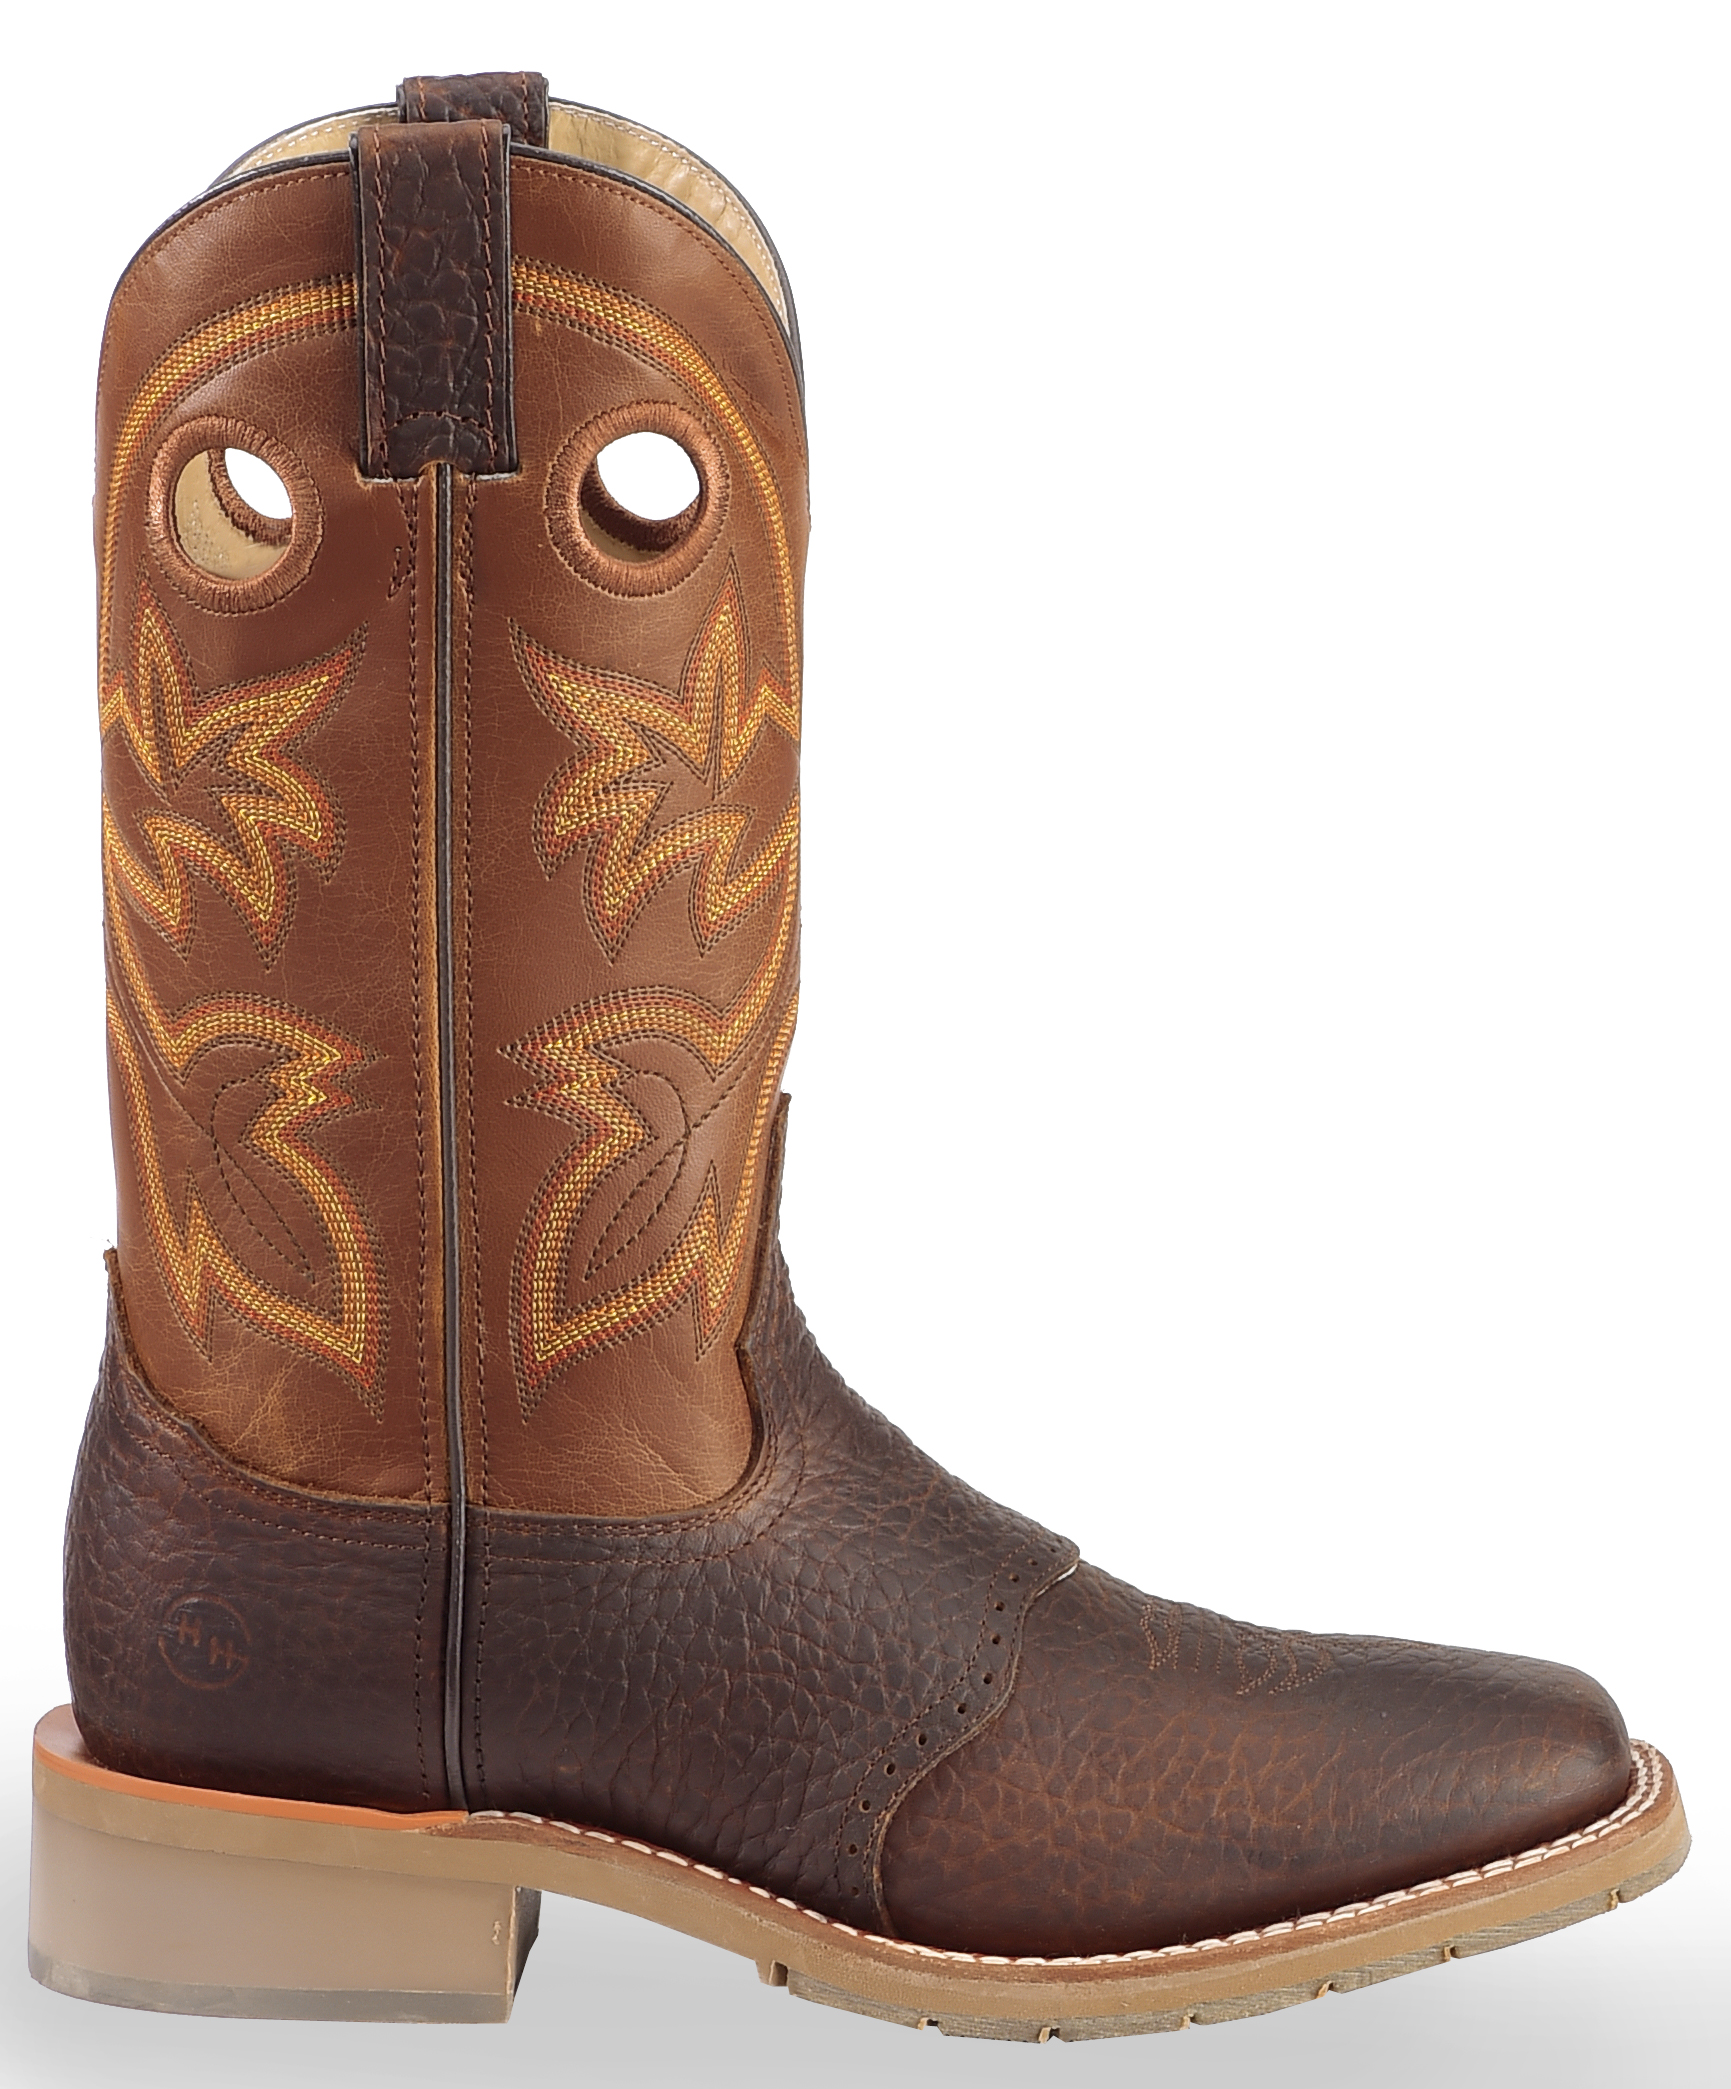 Double H Canyon Rust Saddle Vamp Western Work Boots